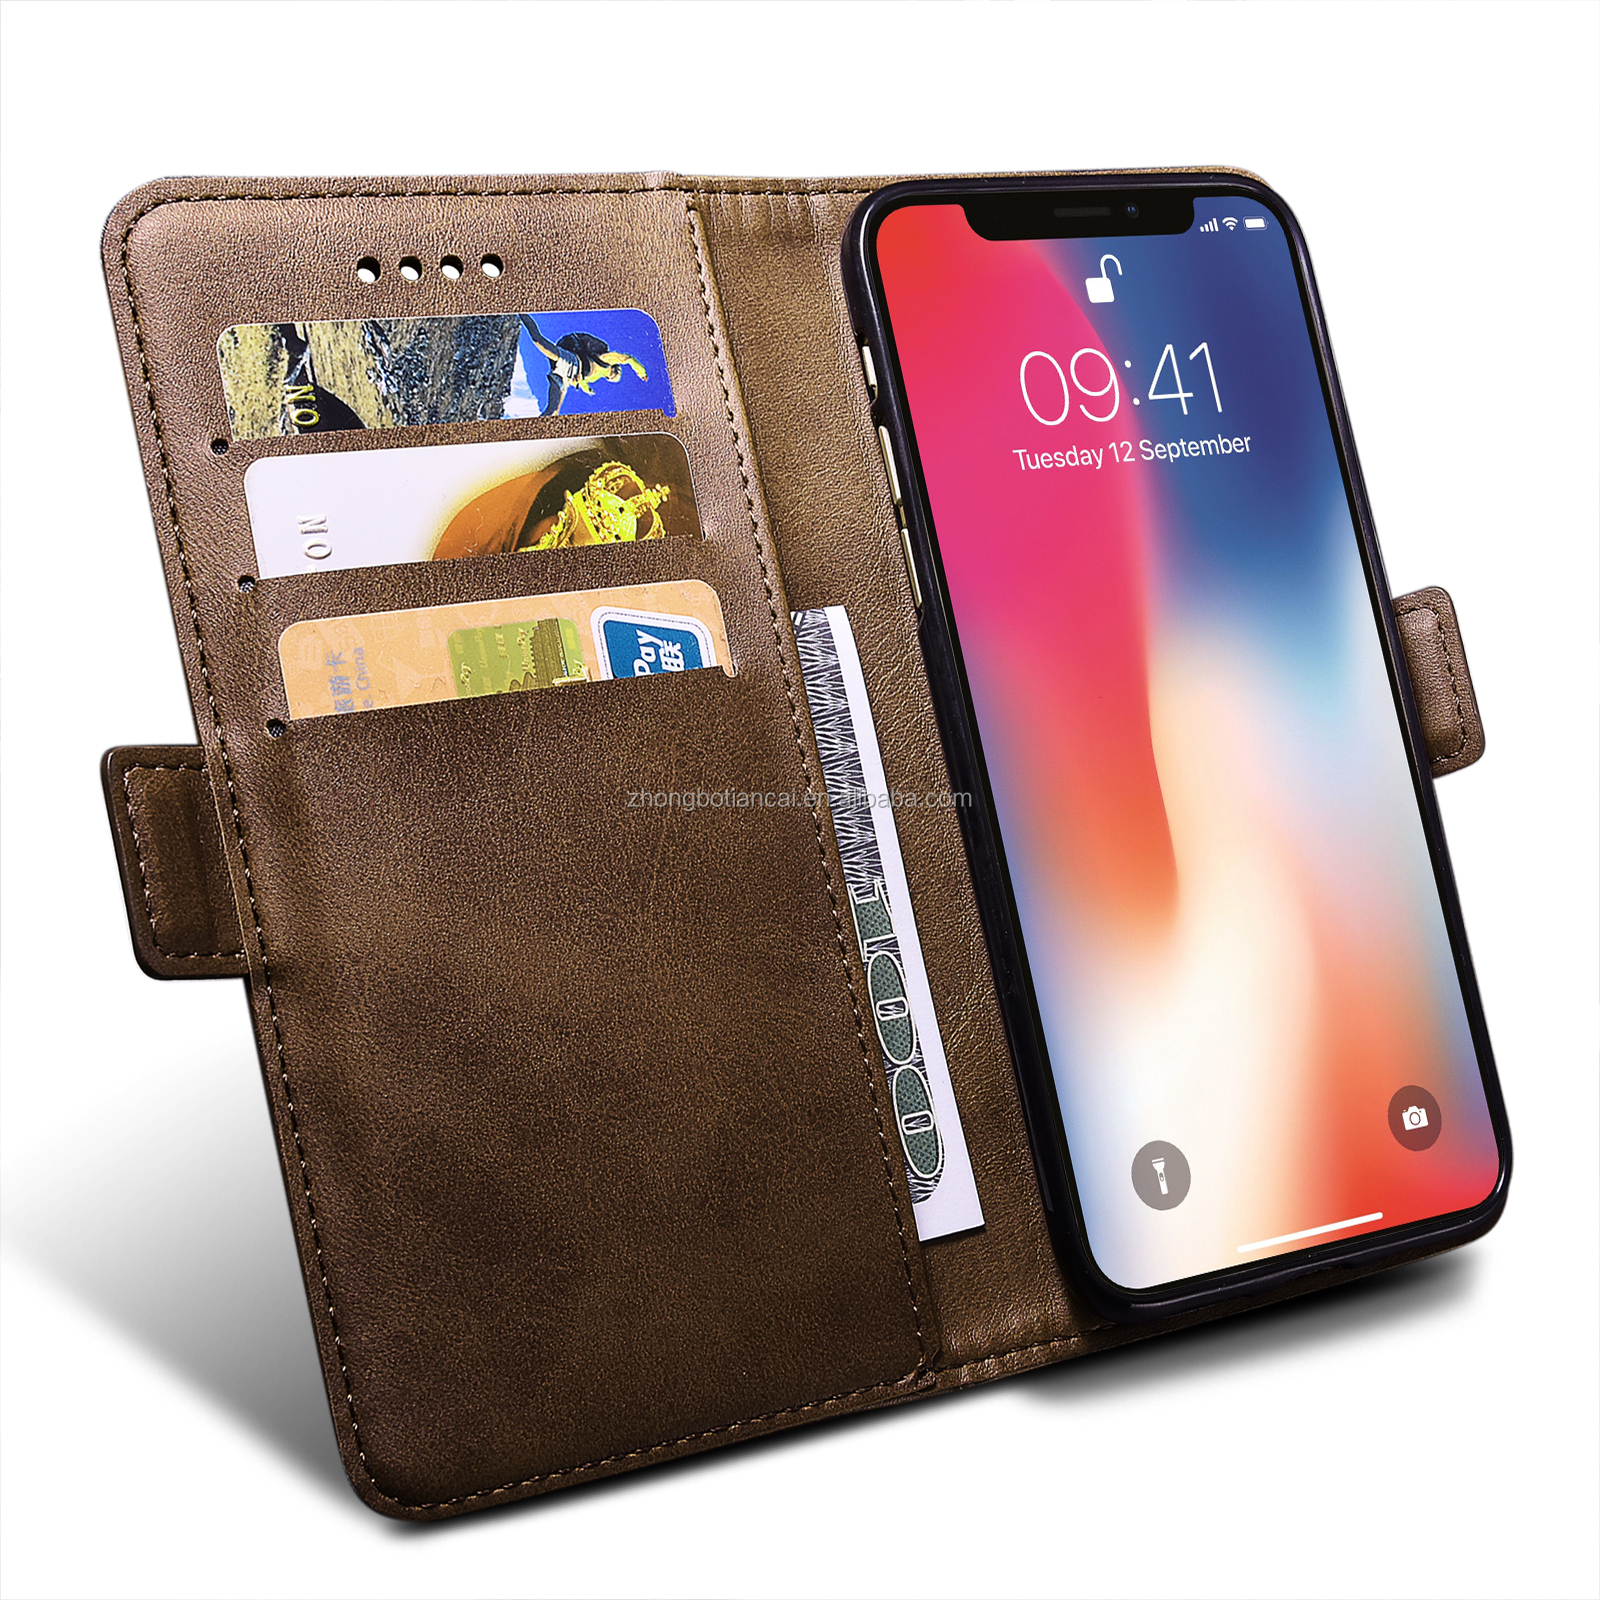 2019 New Retro PU Leather Strong Magnet Book Case RFID Blocking Material For OPPO A3S